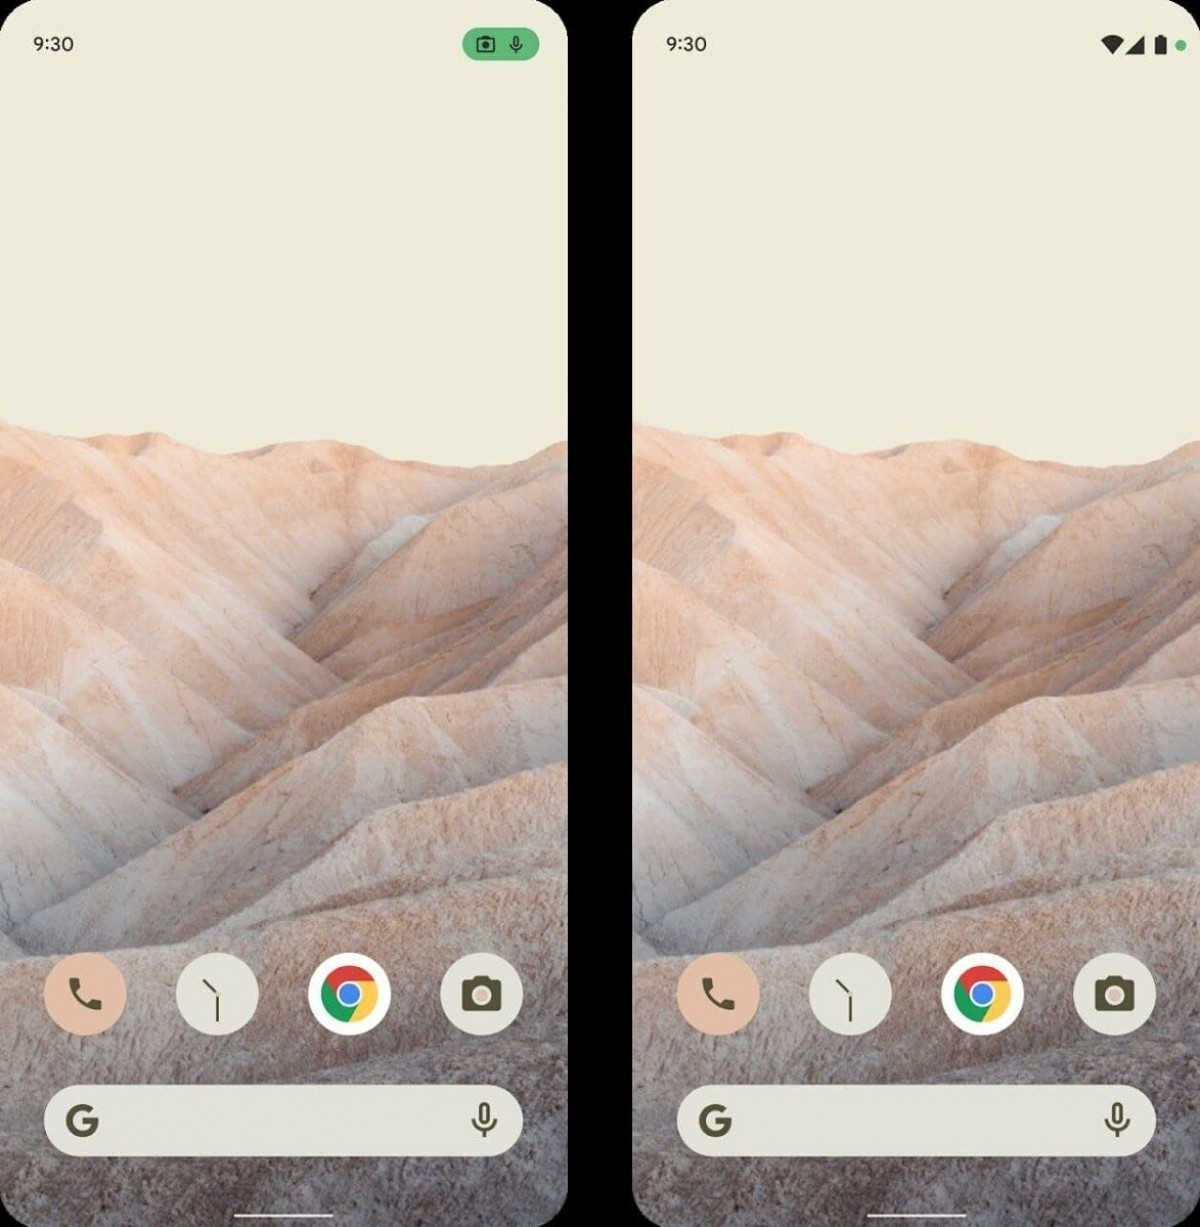 Here's our first look at the Android 12 redesign